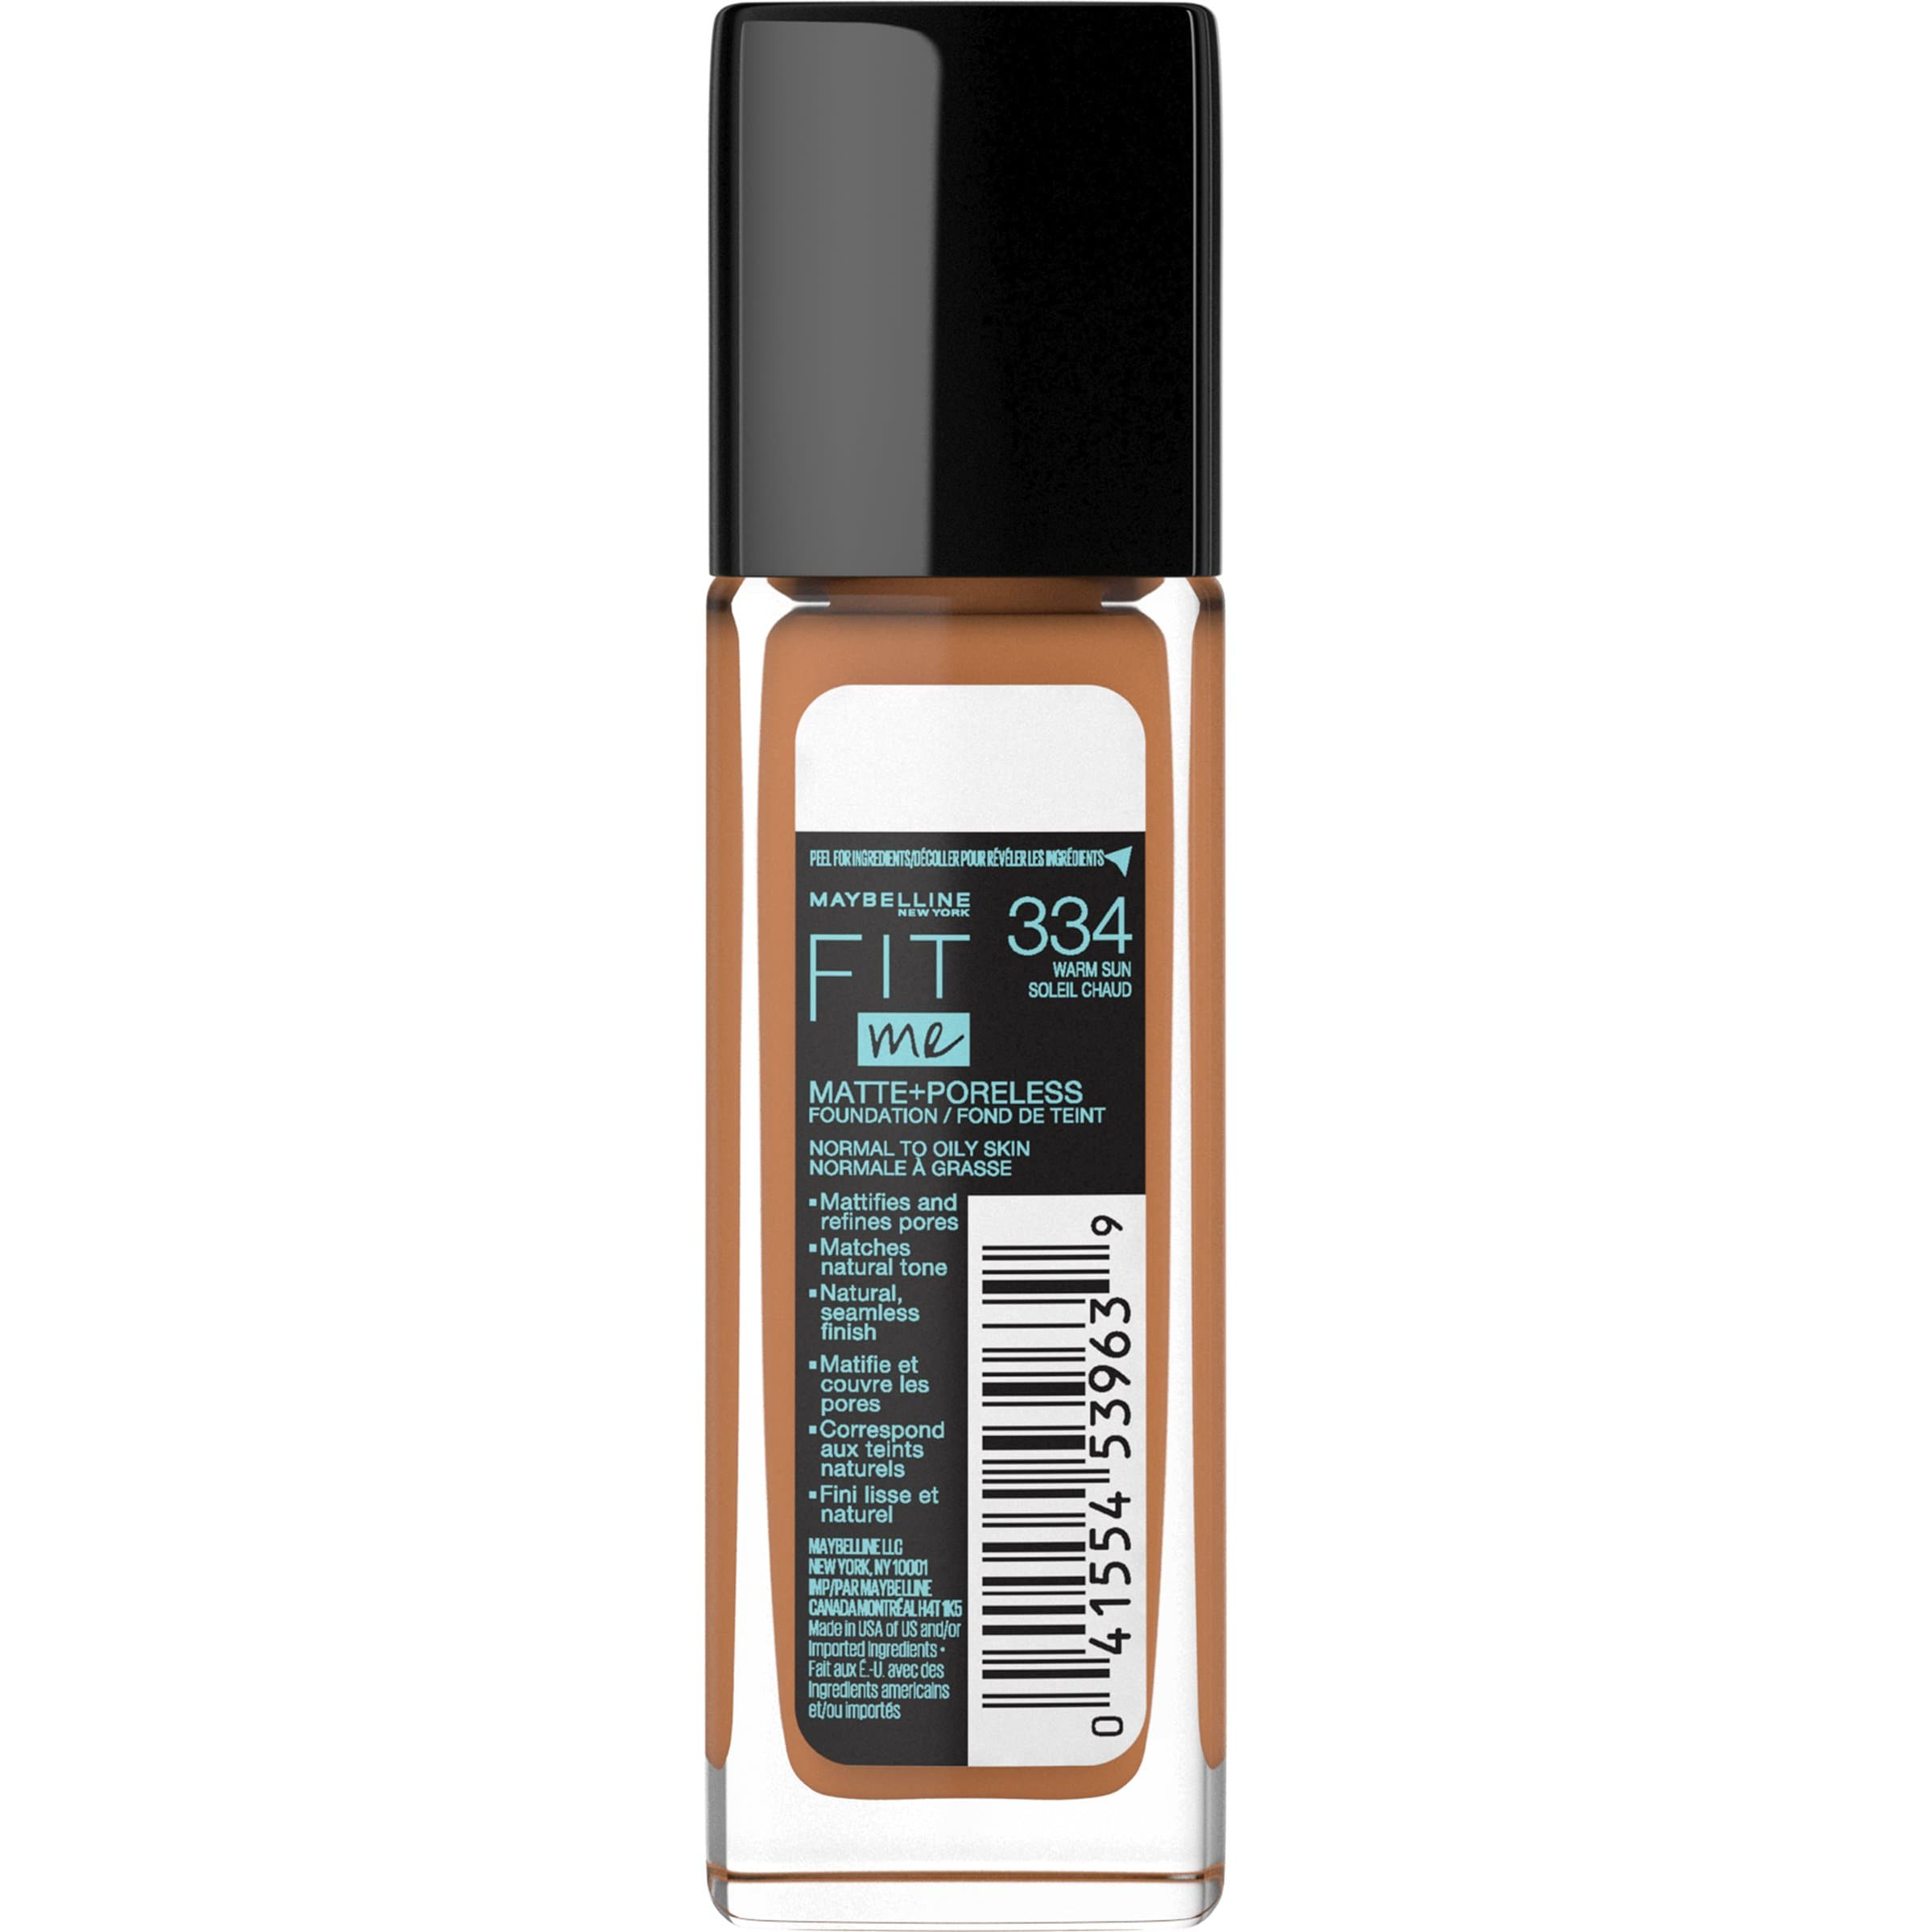 Maybelline Fit Me Liquid Foundation - FLJ CORPORATIONS